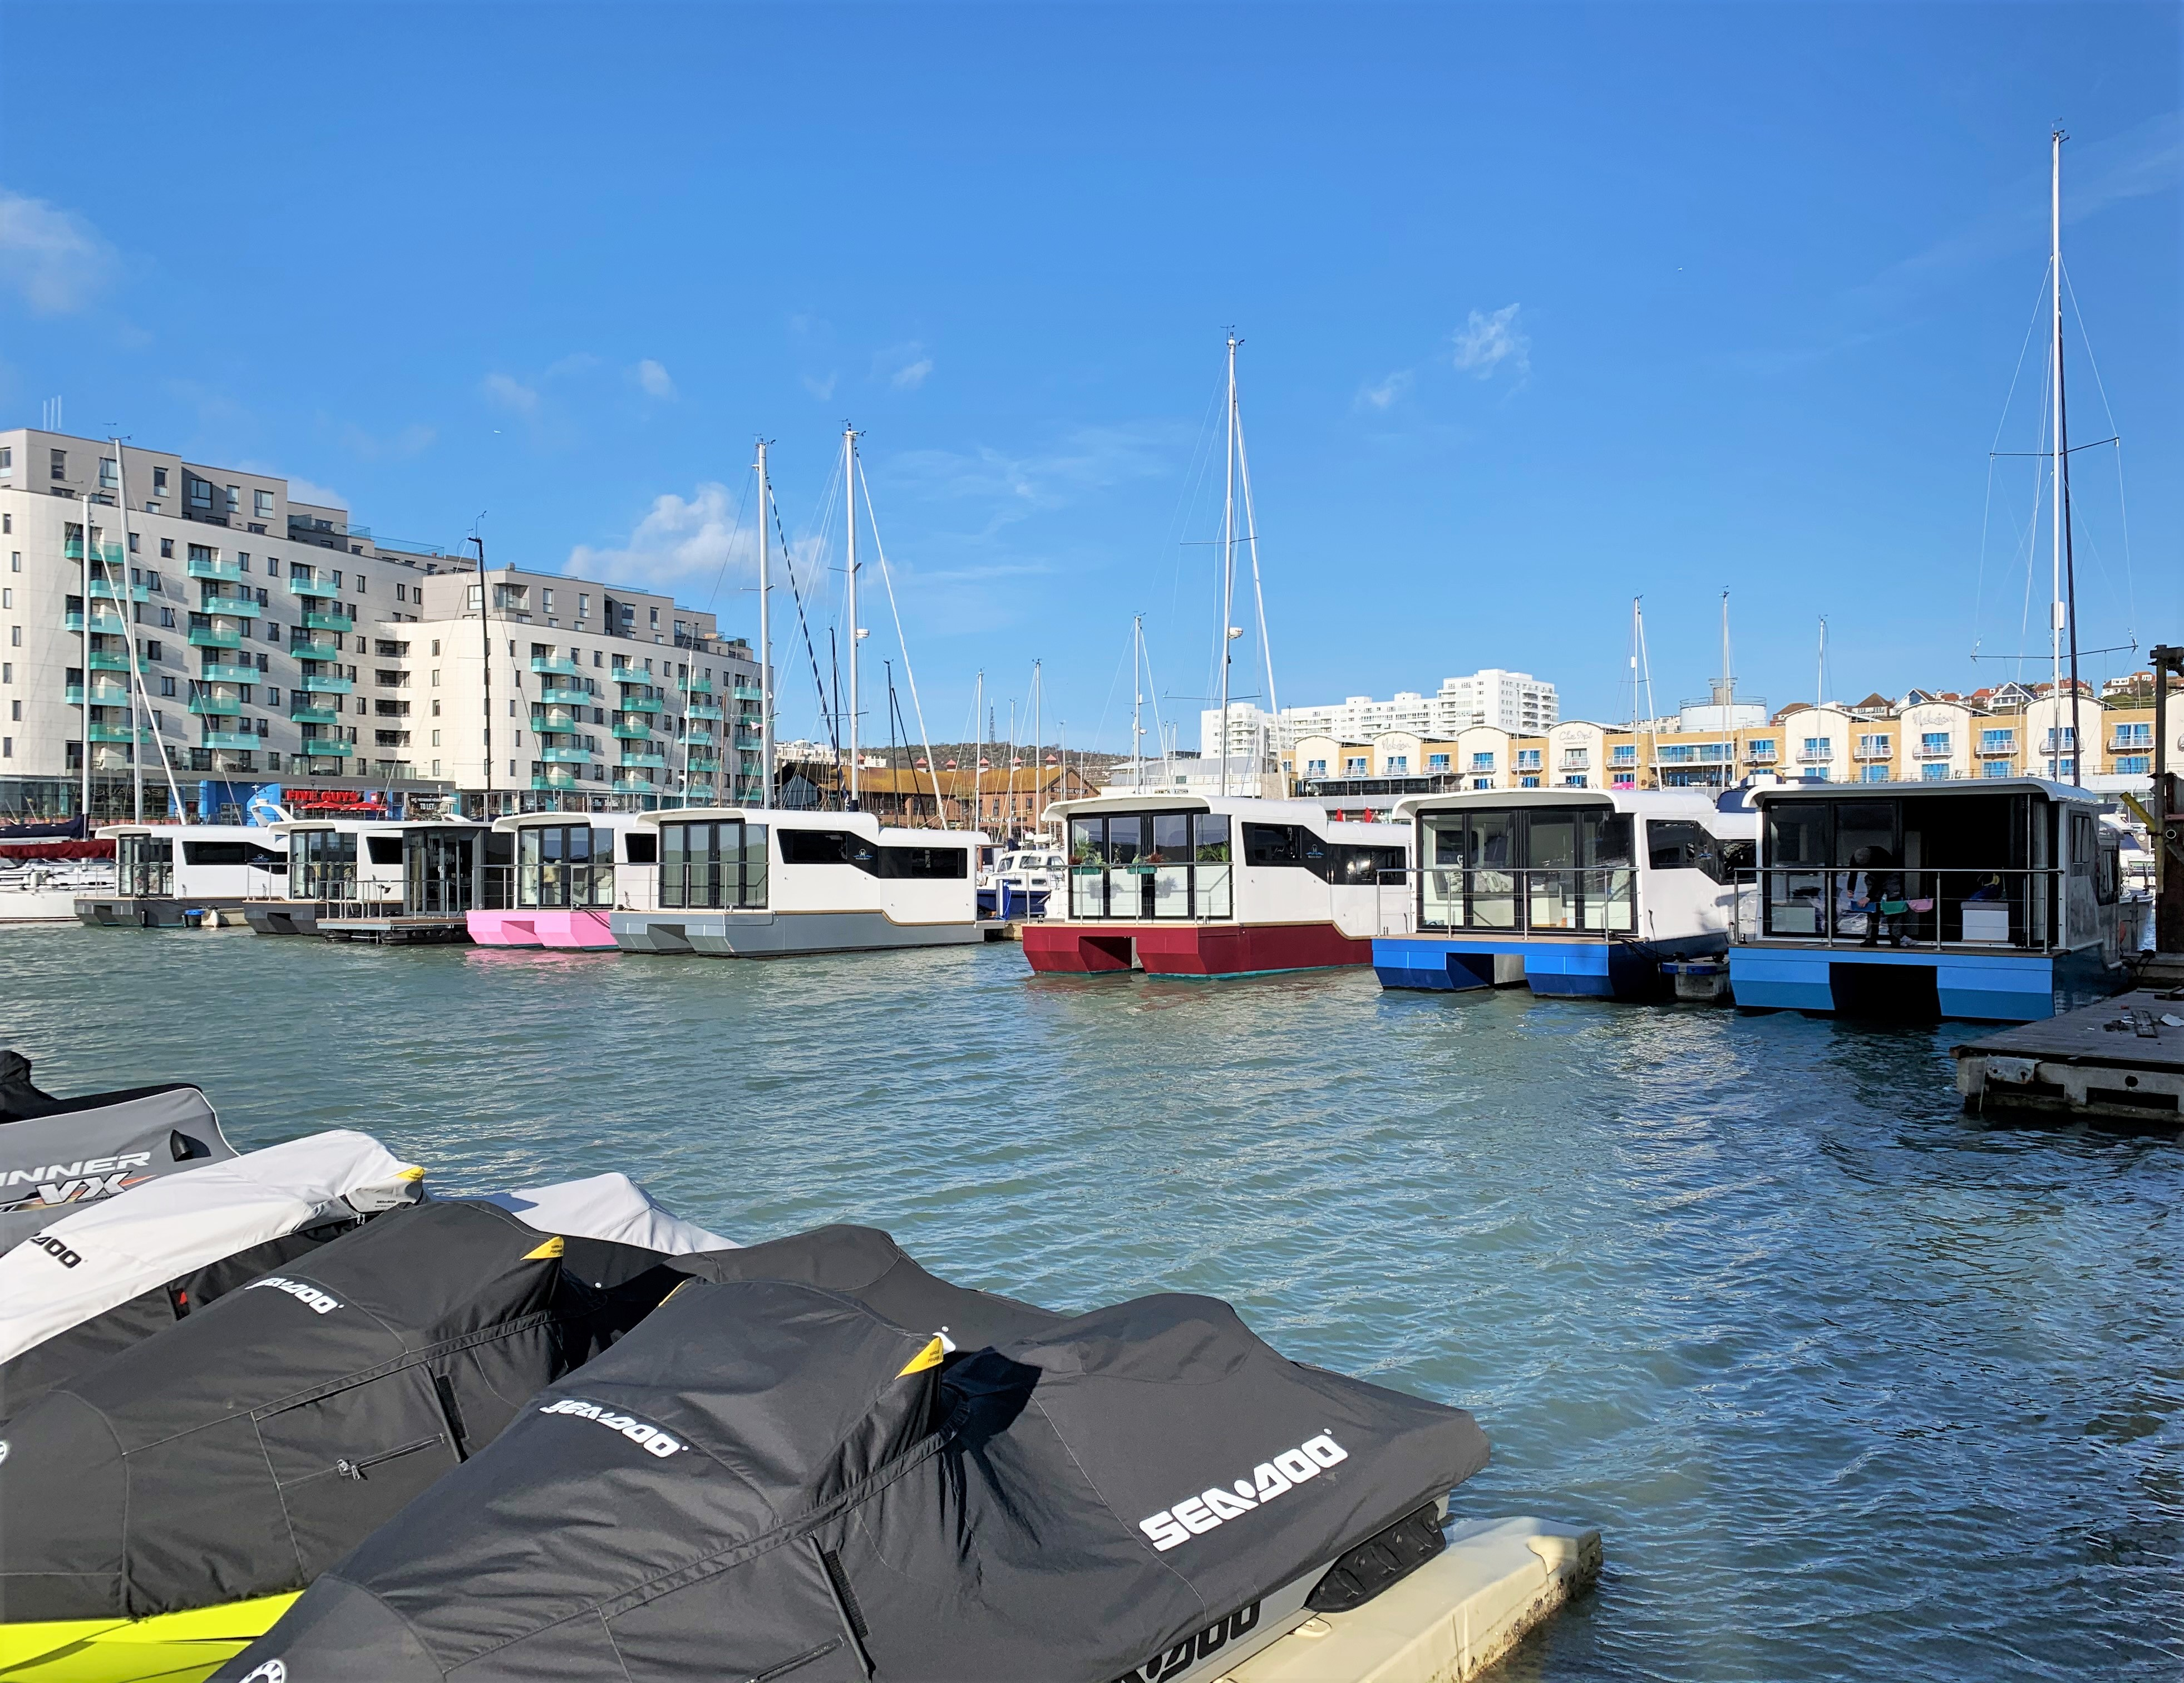 Marina boats with different coloured hulls